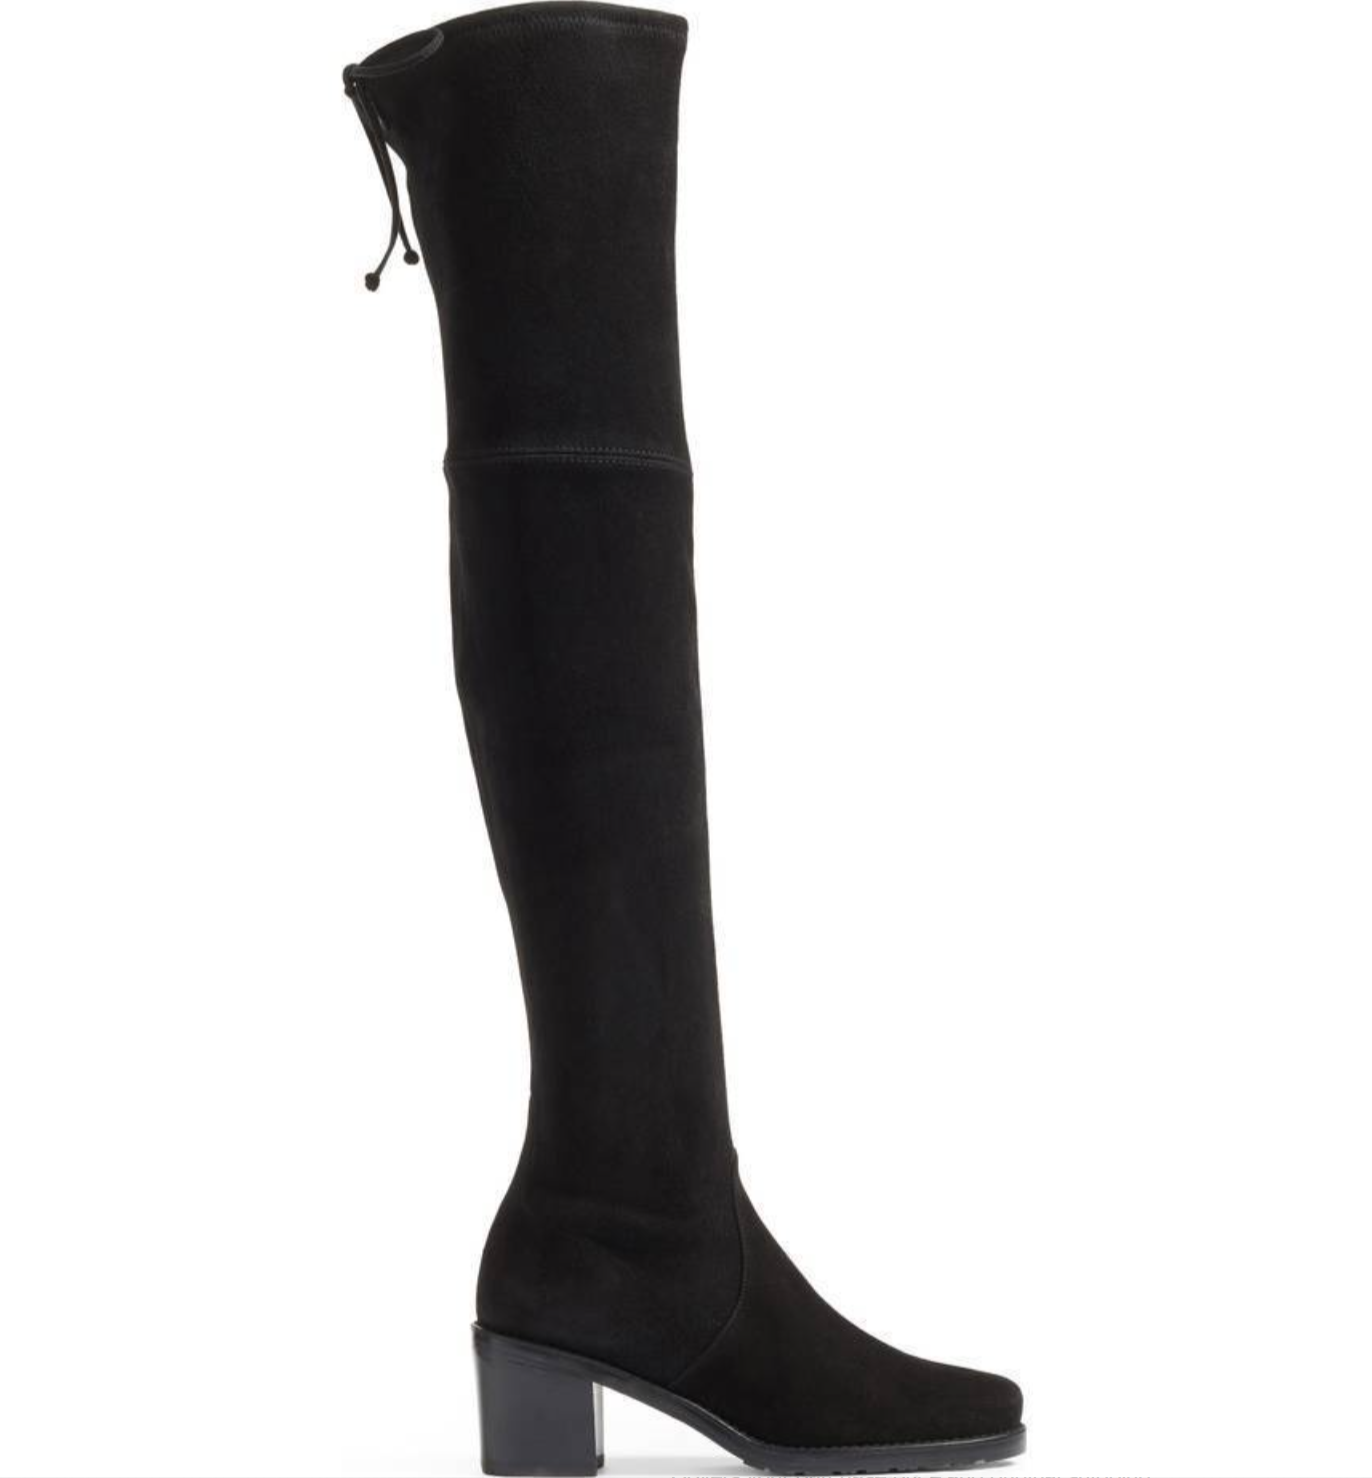 Stuart Weitzman Elevated Elevated Elevated Over The Knee OTK Black Suede Boots Thigh High 8.5 NEW b94028